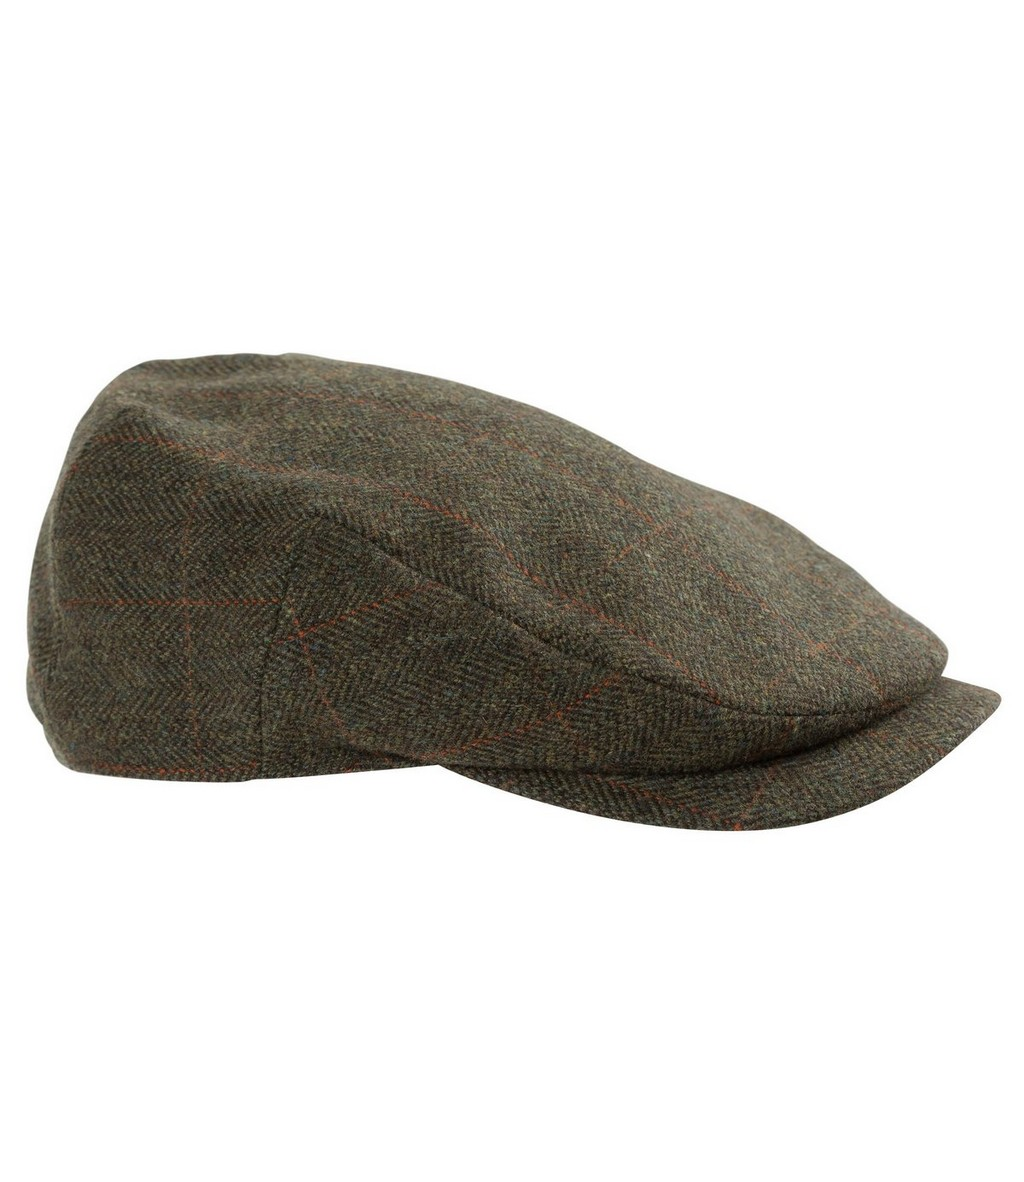 3c5b37061411d Hoggs of Fife Harewood Tweed Cap - PPG Country Clothing